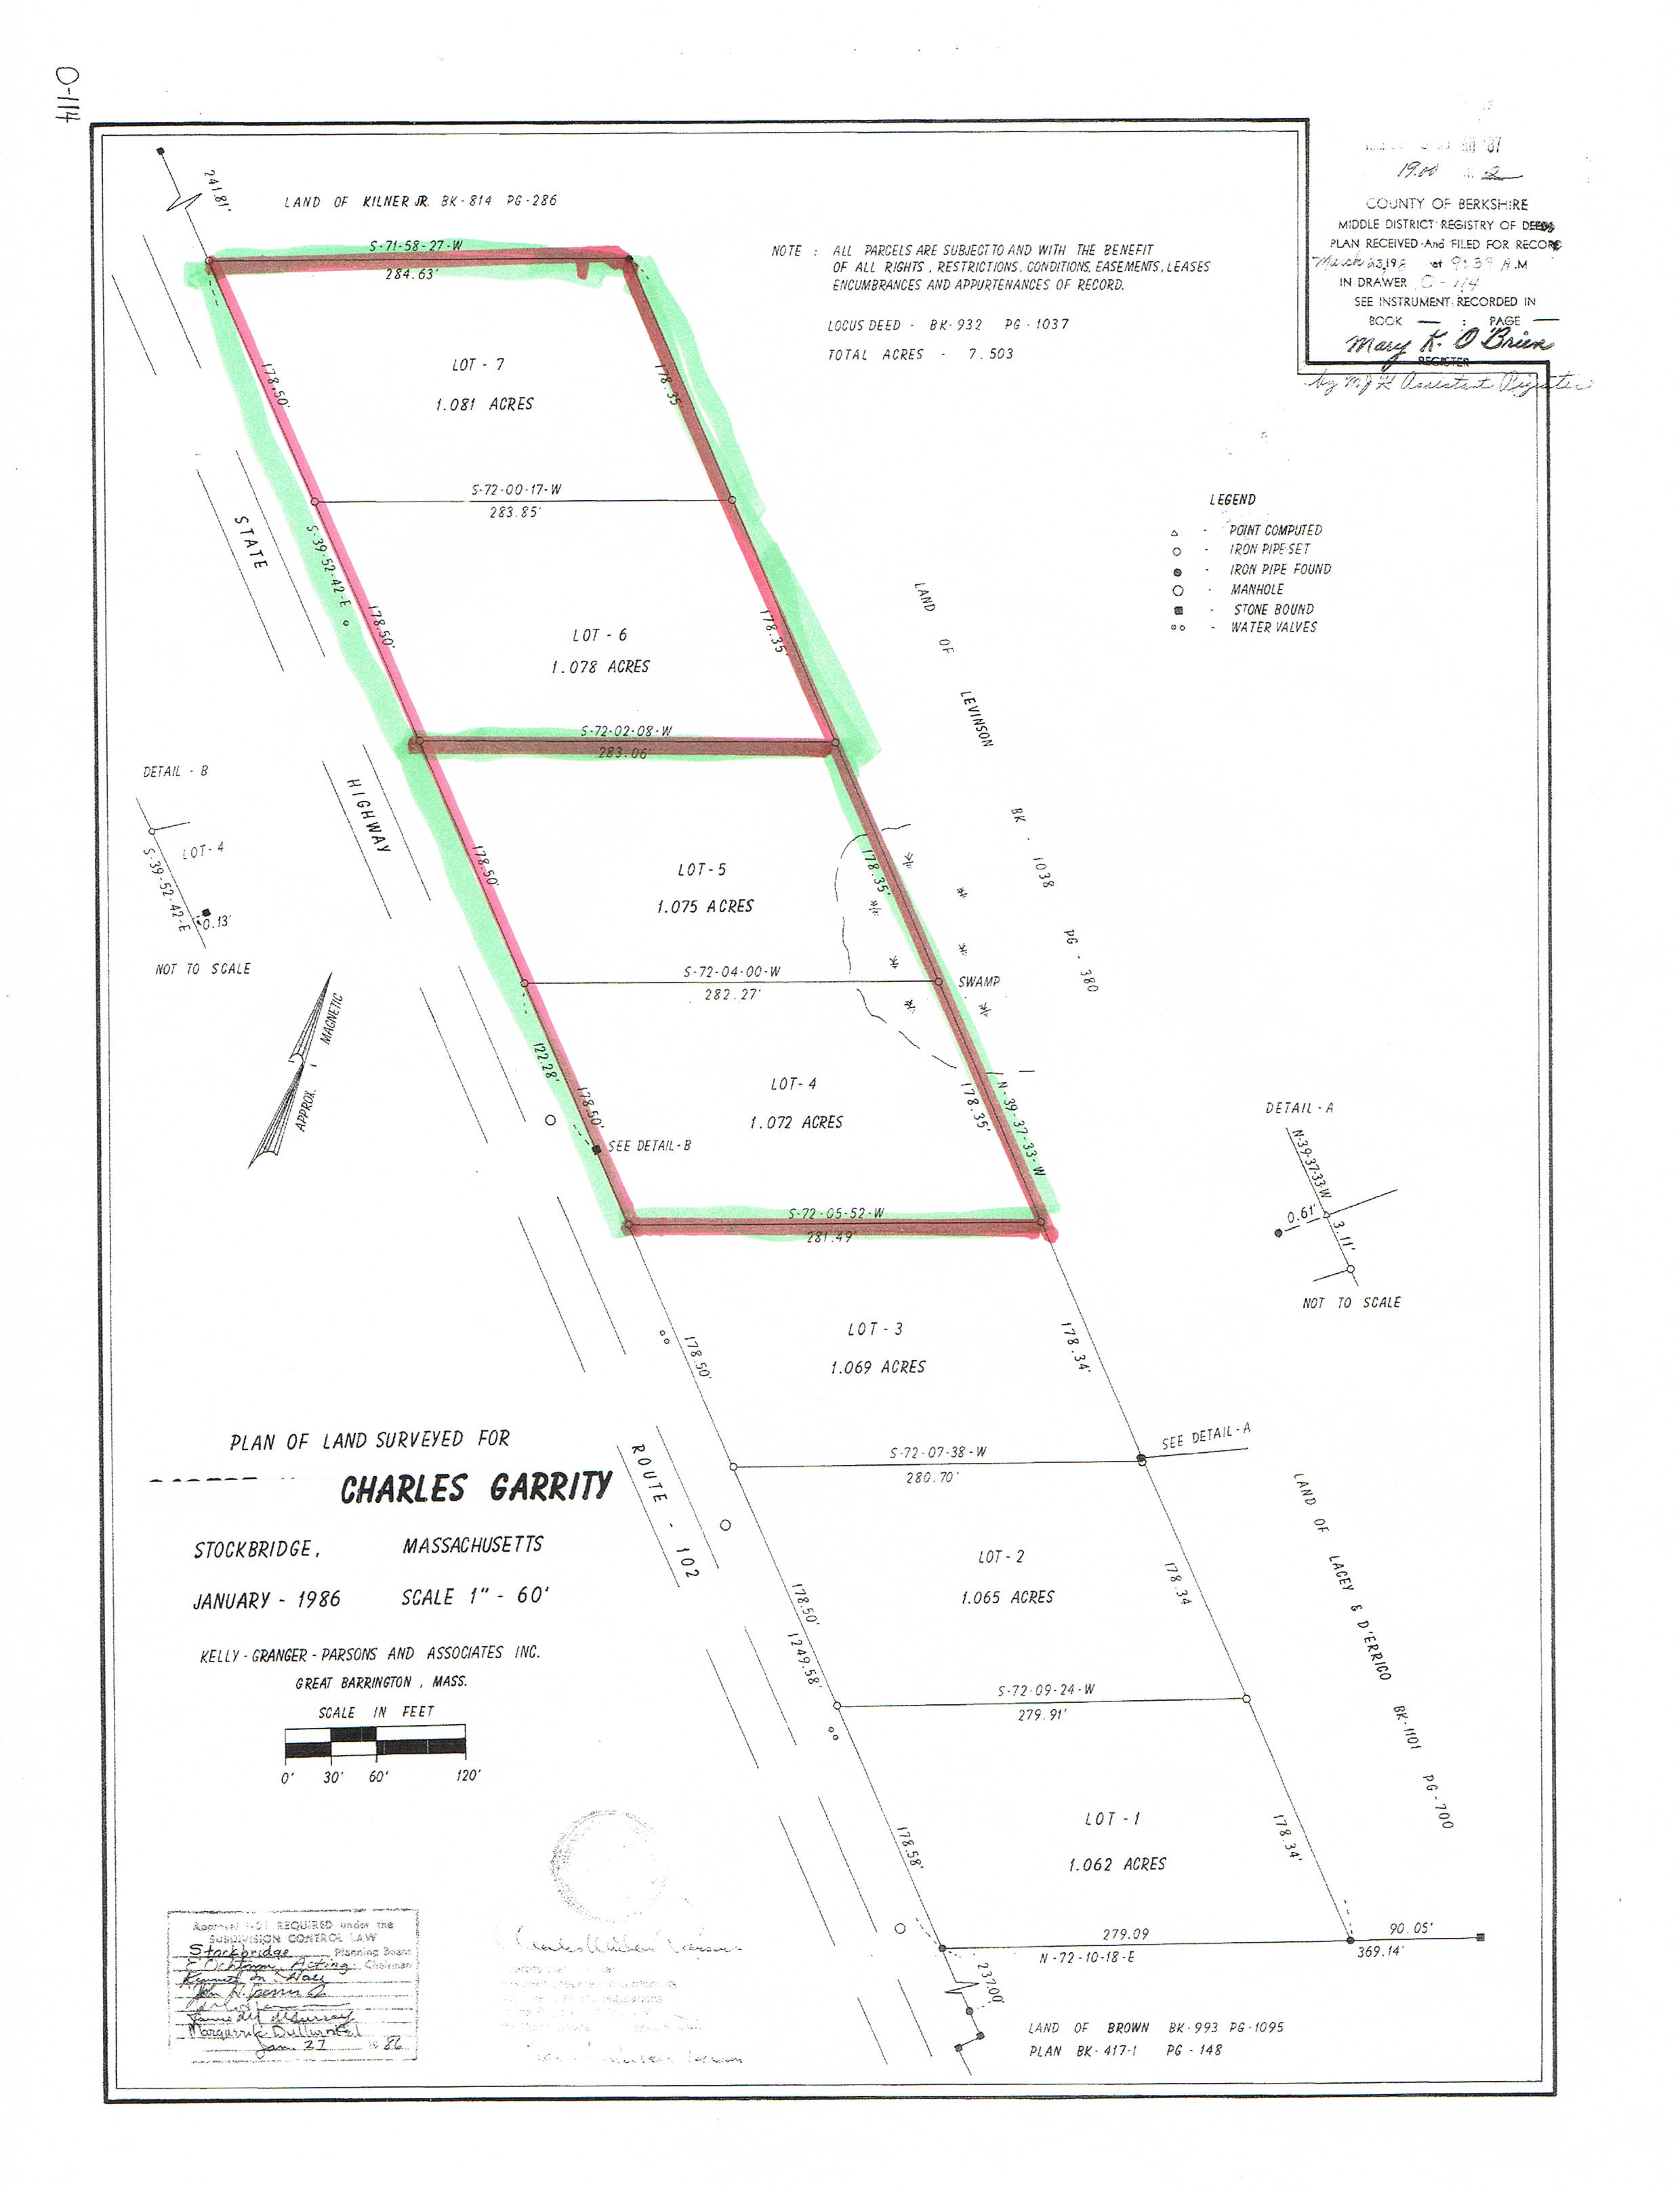 Stockbridge Ma Lots For Sale By Owner